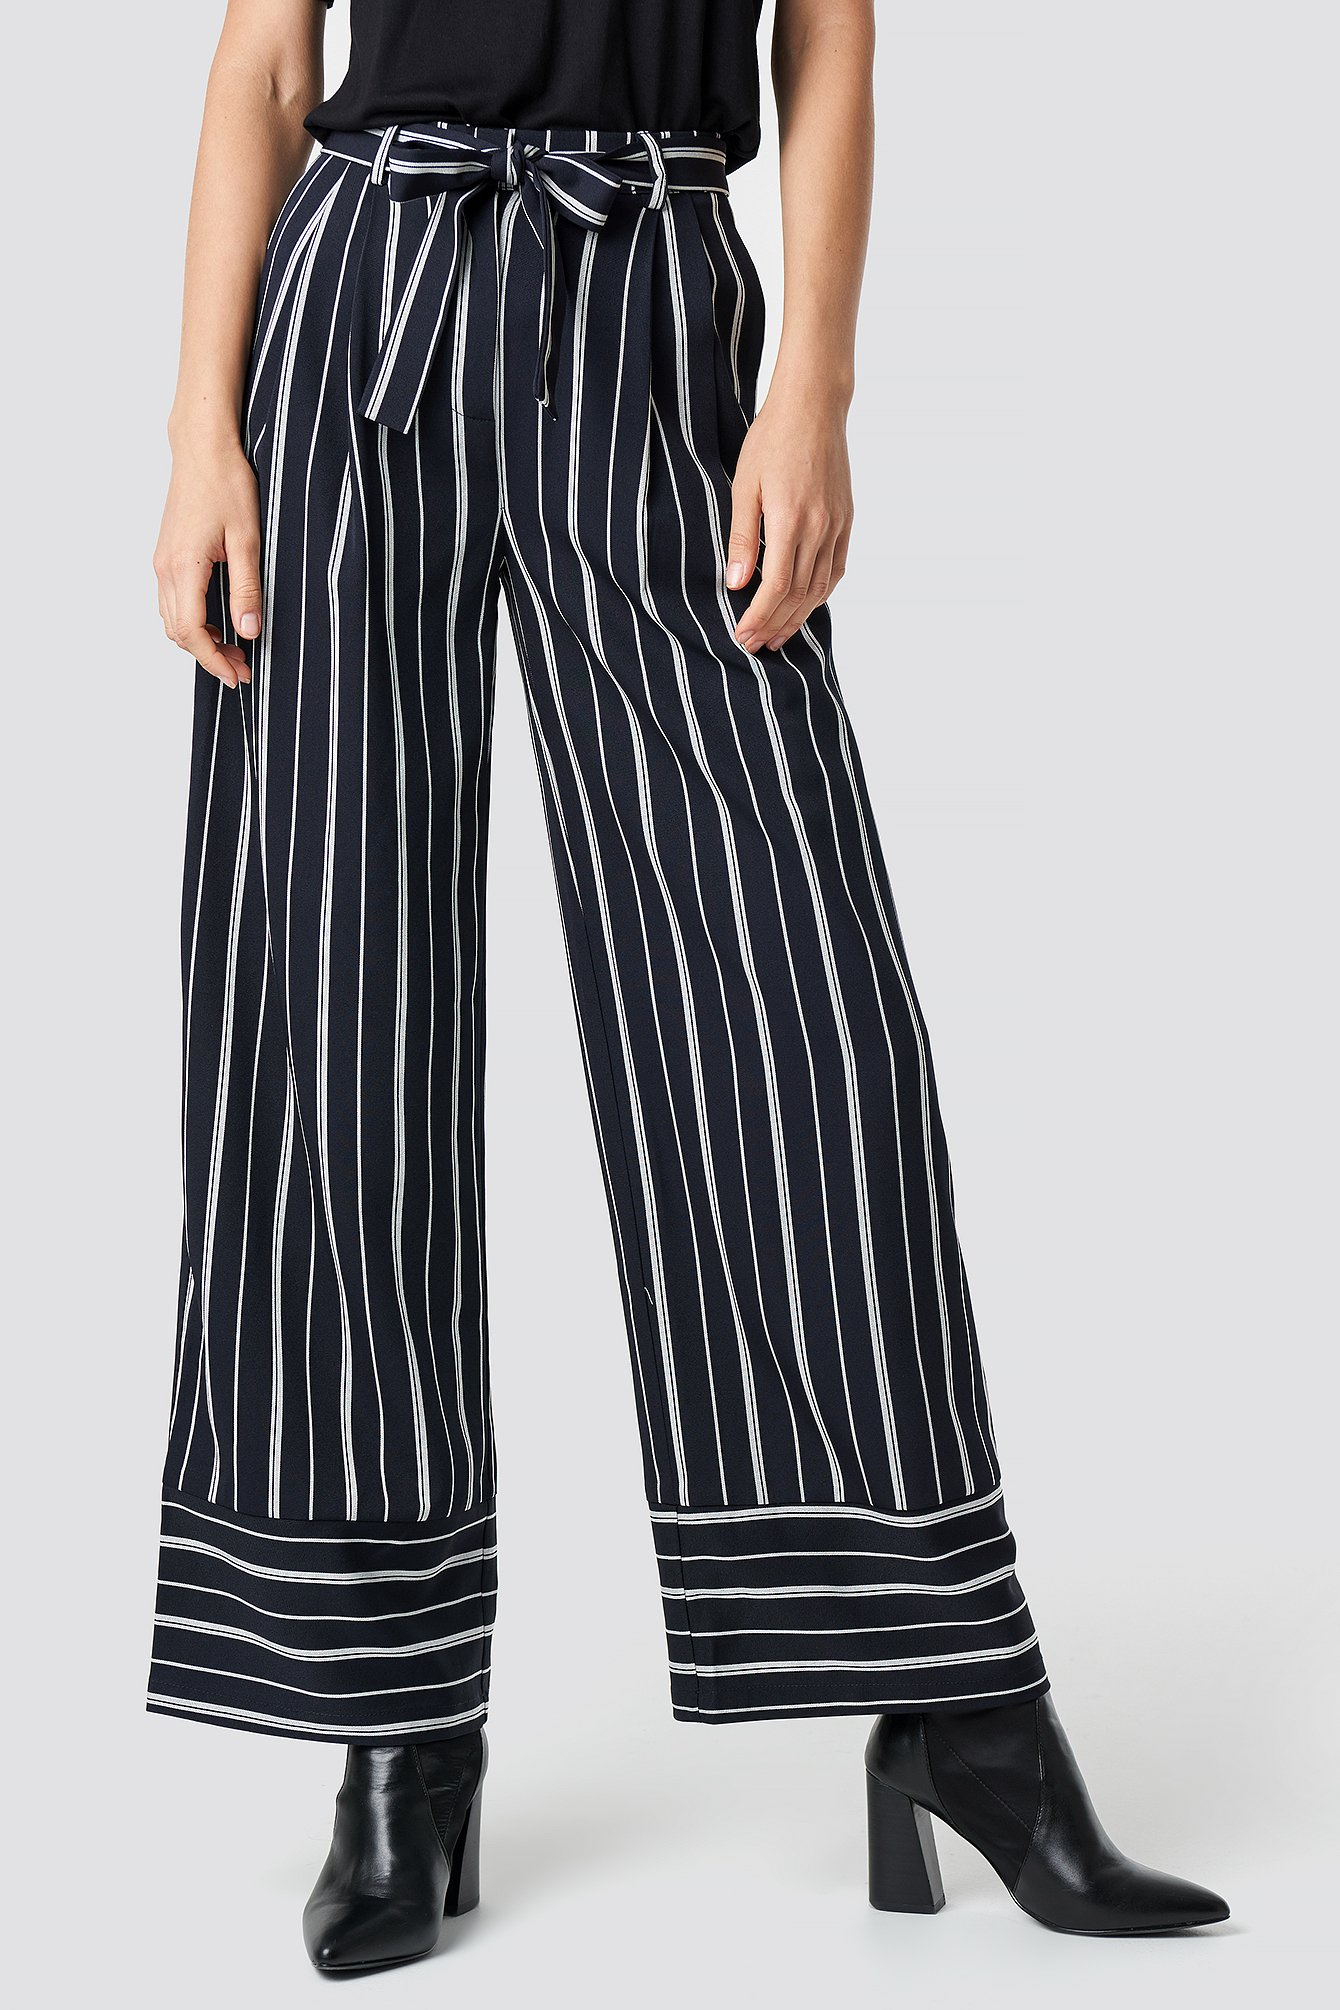 Tie Waist Striped Wide Pants NA-KD.COM